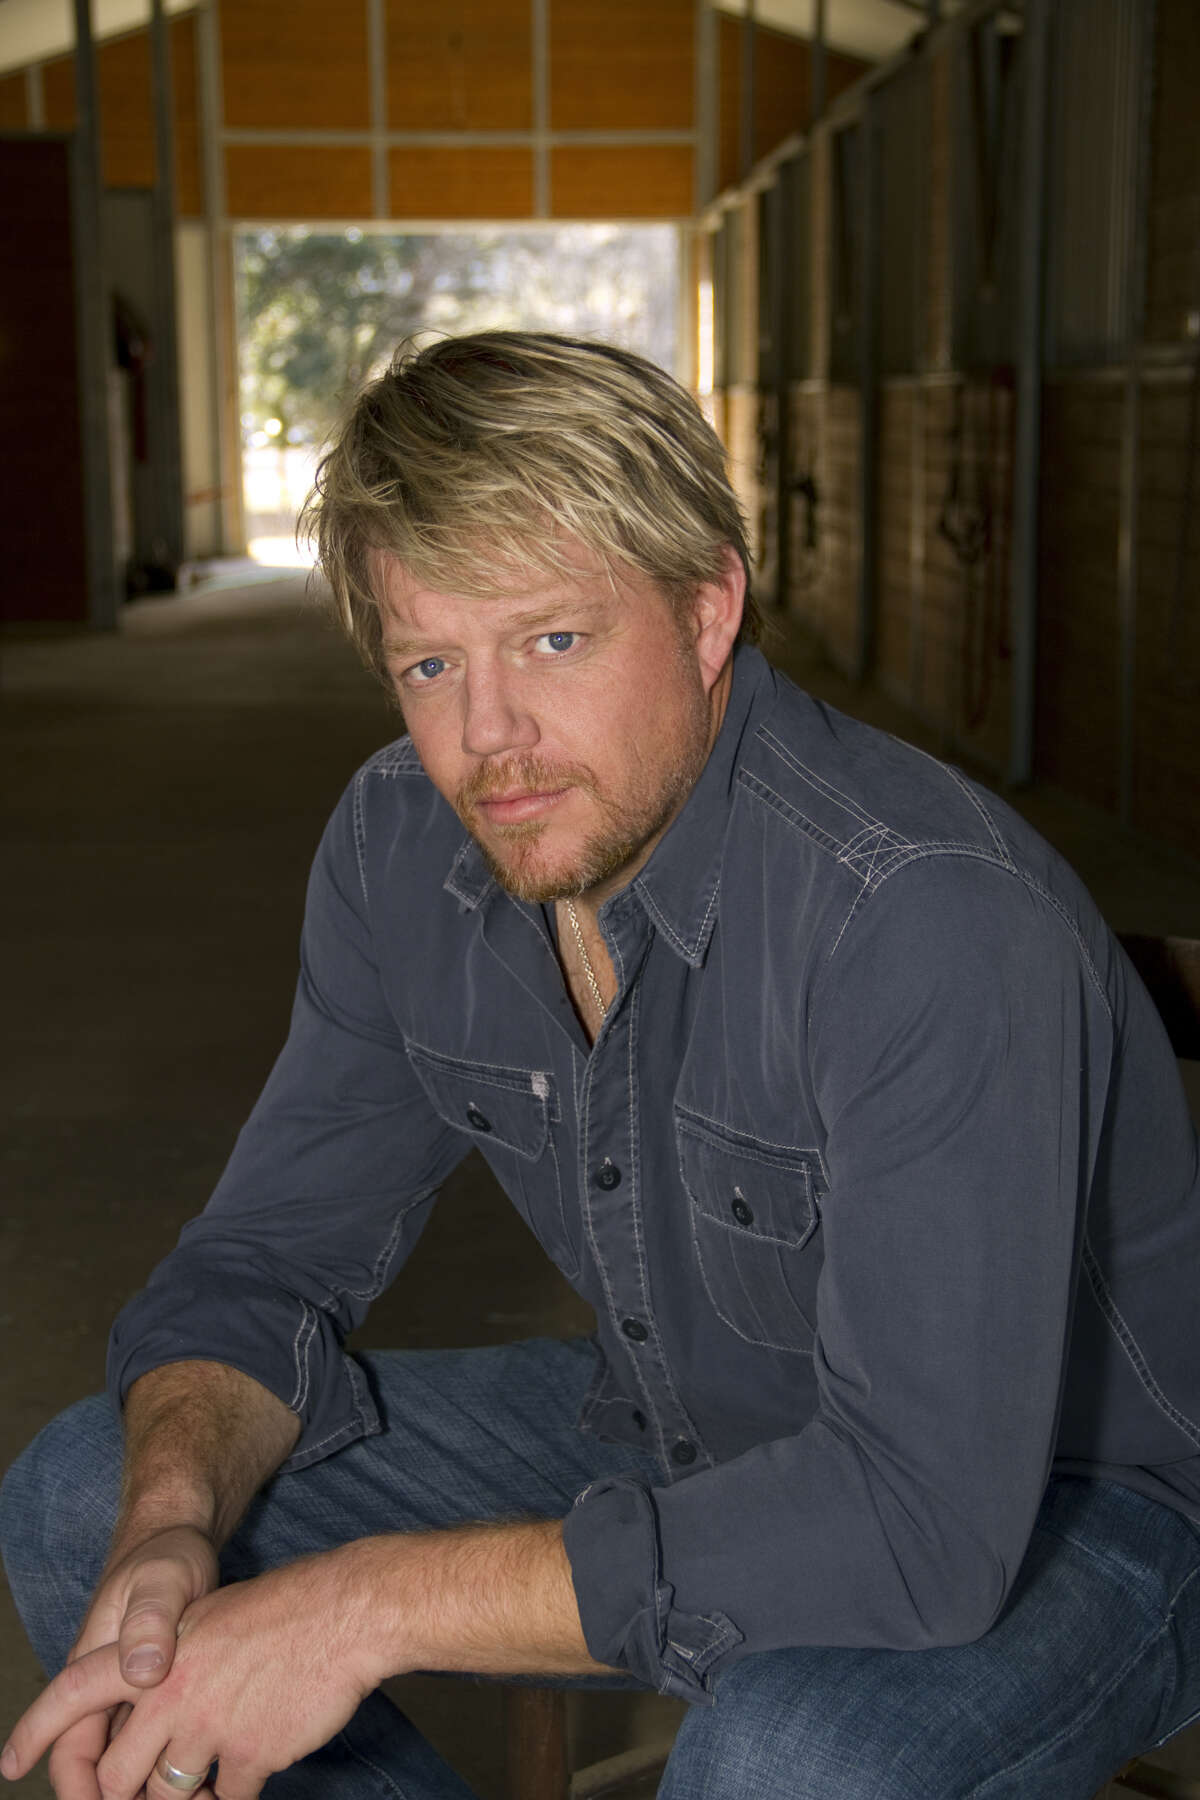 Pat Green's restaurant and live music venue, The Rustic, opens in Houston on November 2. Pat Green's hitsongs include